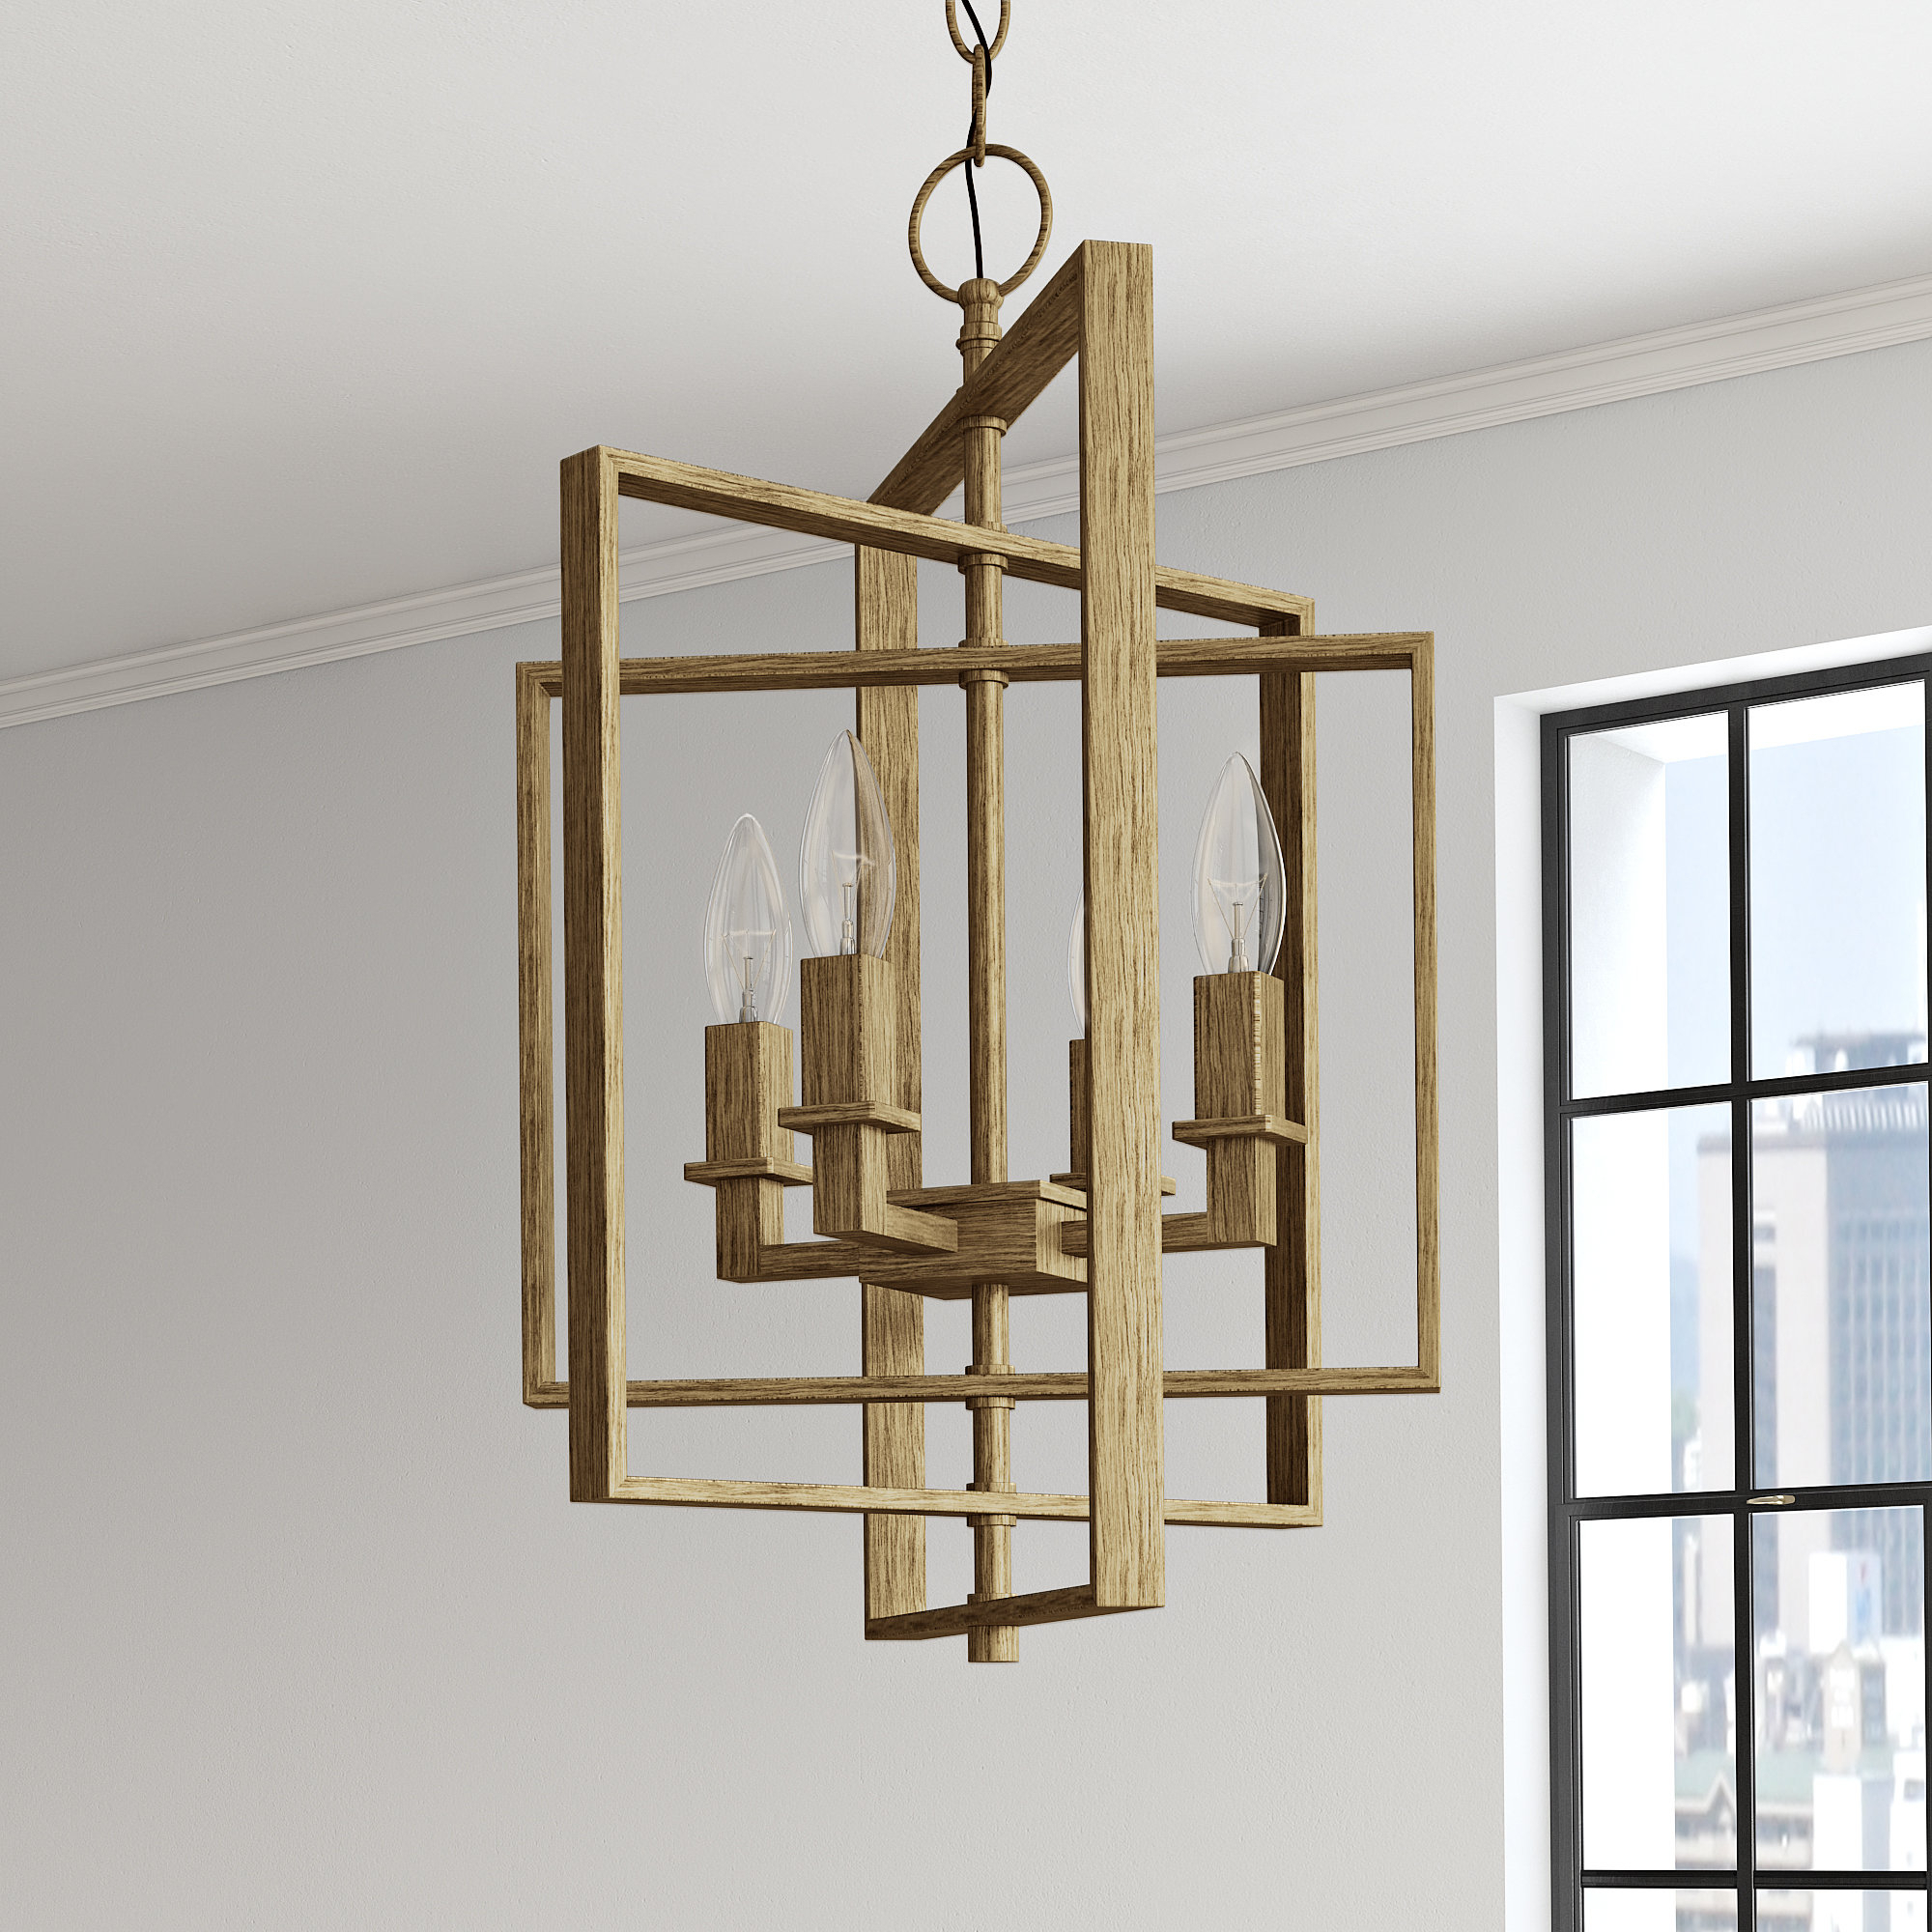 2019 Yarnell 4 Light Square/rectangle Chandelier Within Tiana 4 Light Geometric Chandeliers (View 1 of 20)